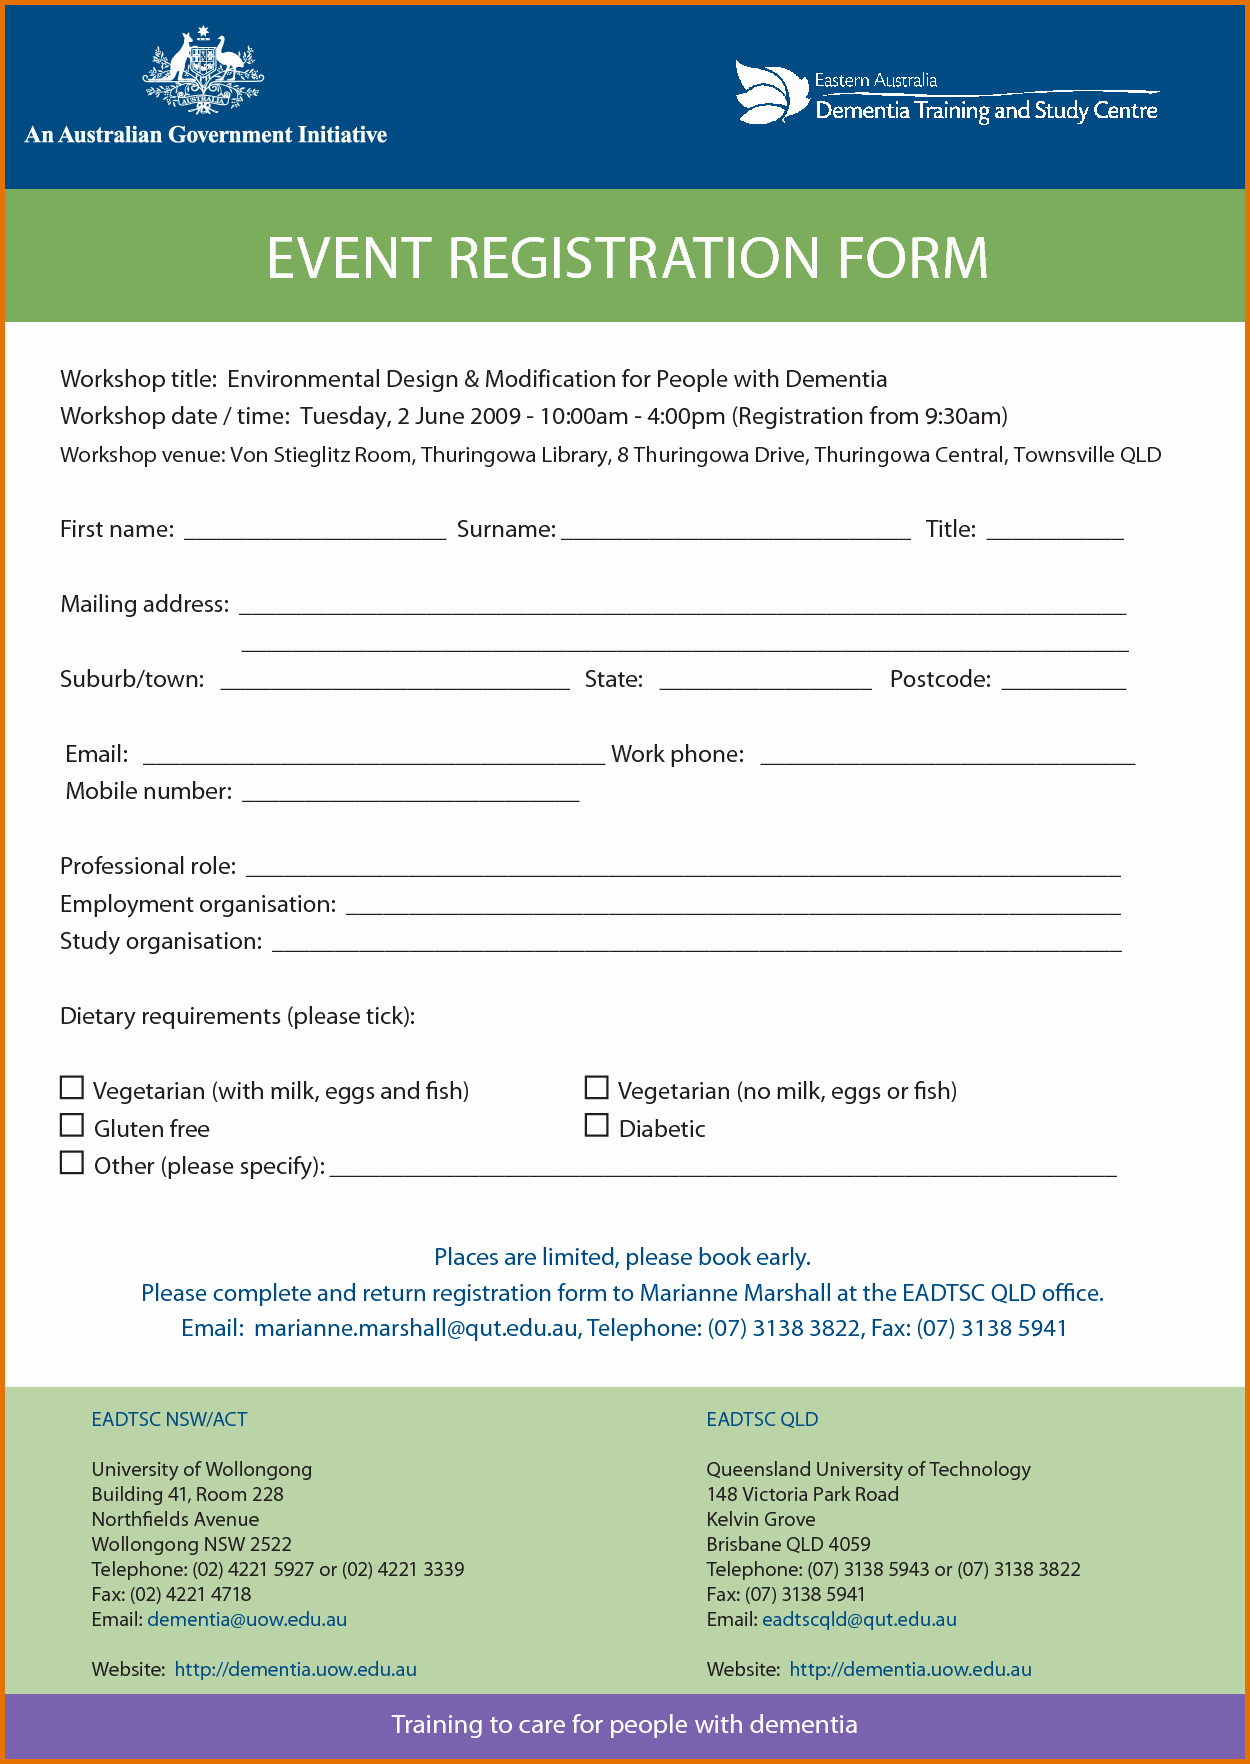 Registration forms Template Word Inspirational Registration form Template Wordreference Letters Words